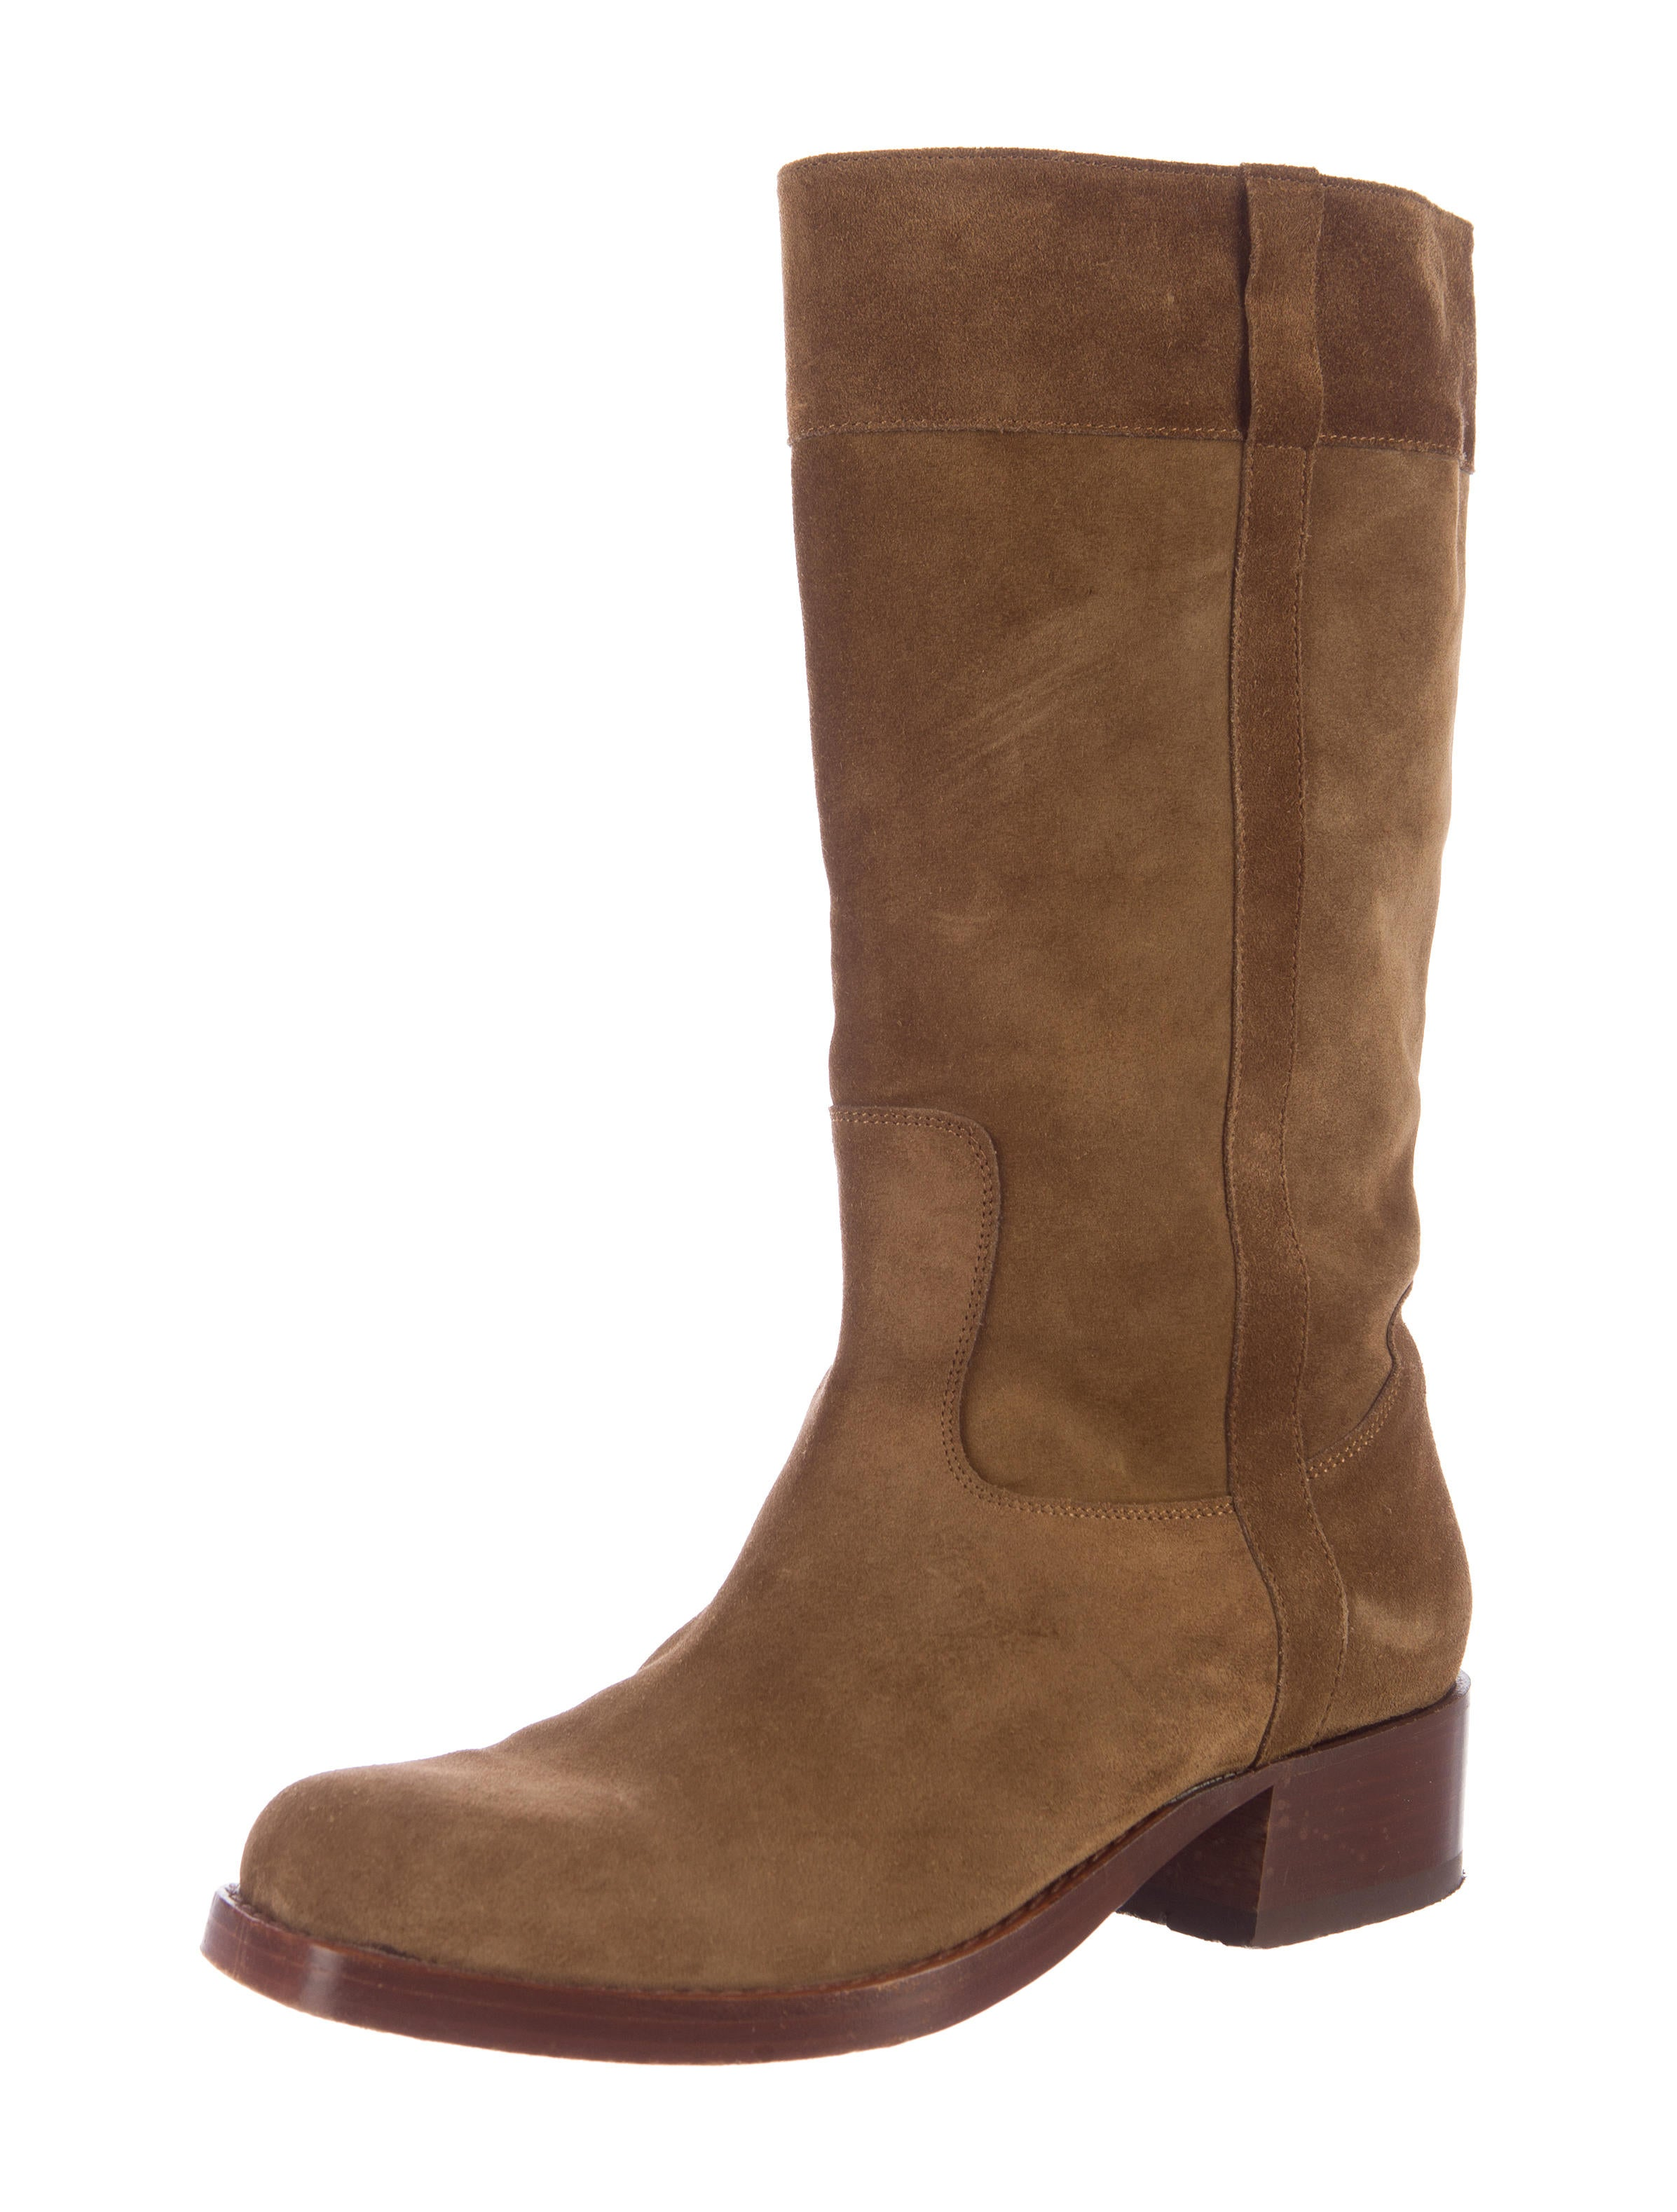 robert clergerie suede mid calf boots shoes rog25321